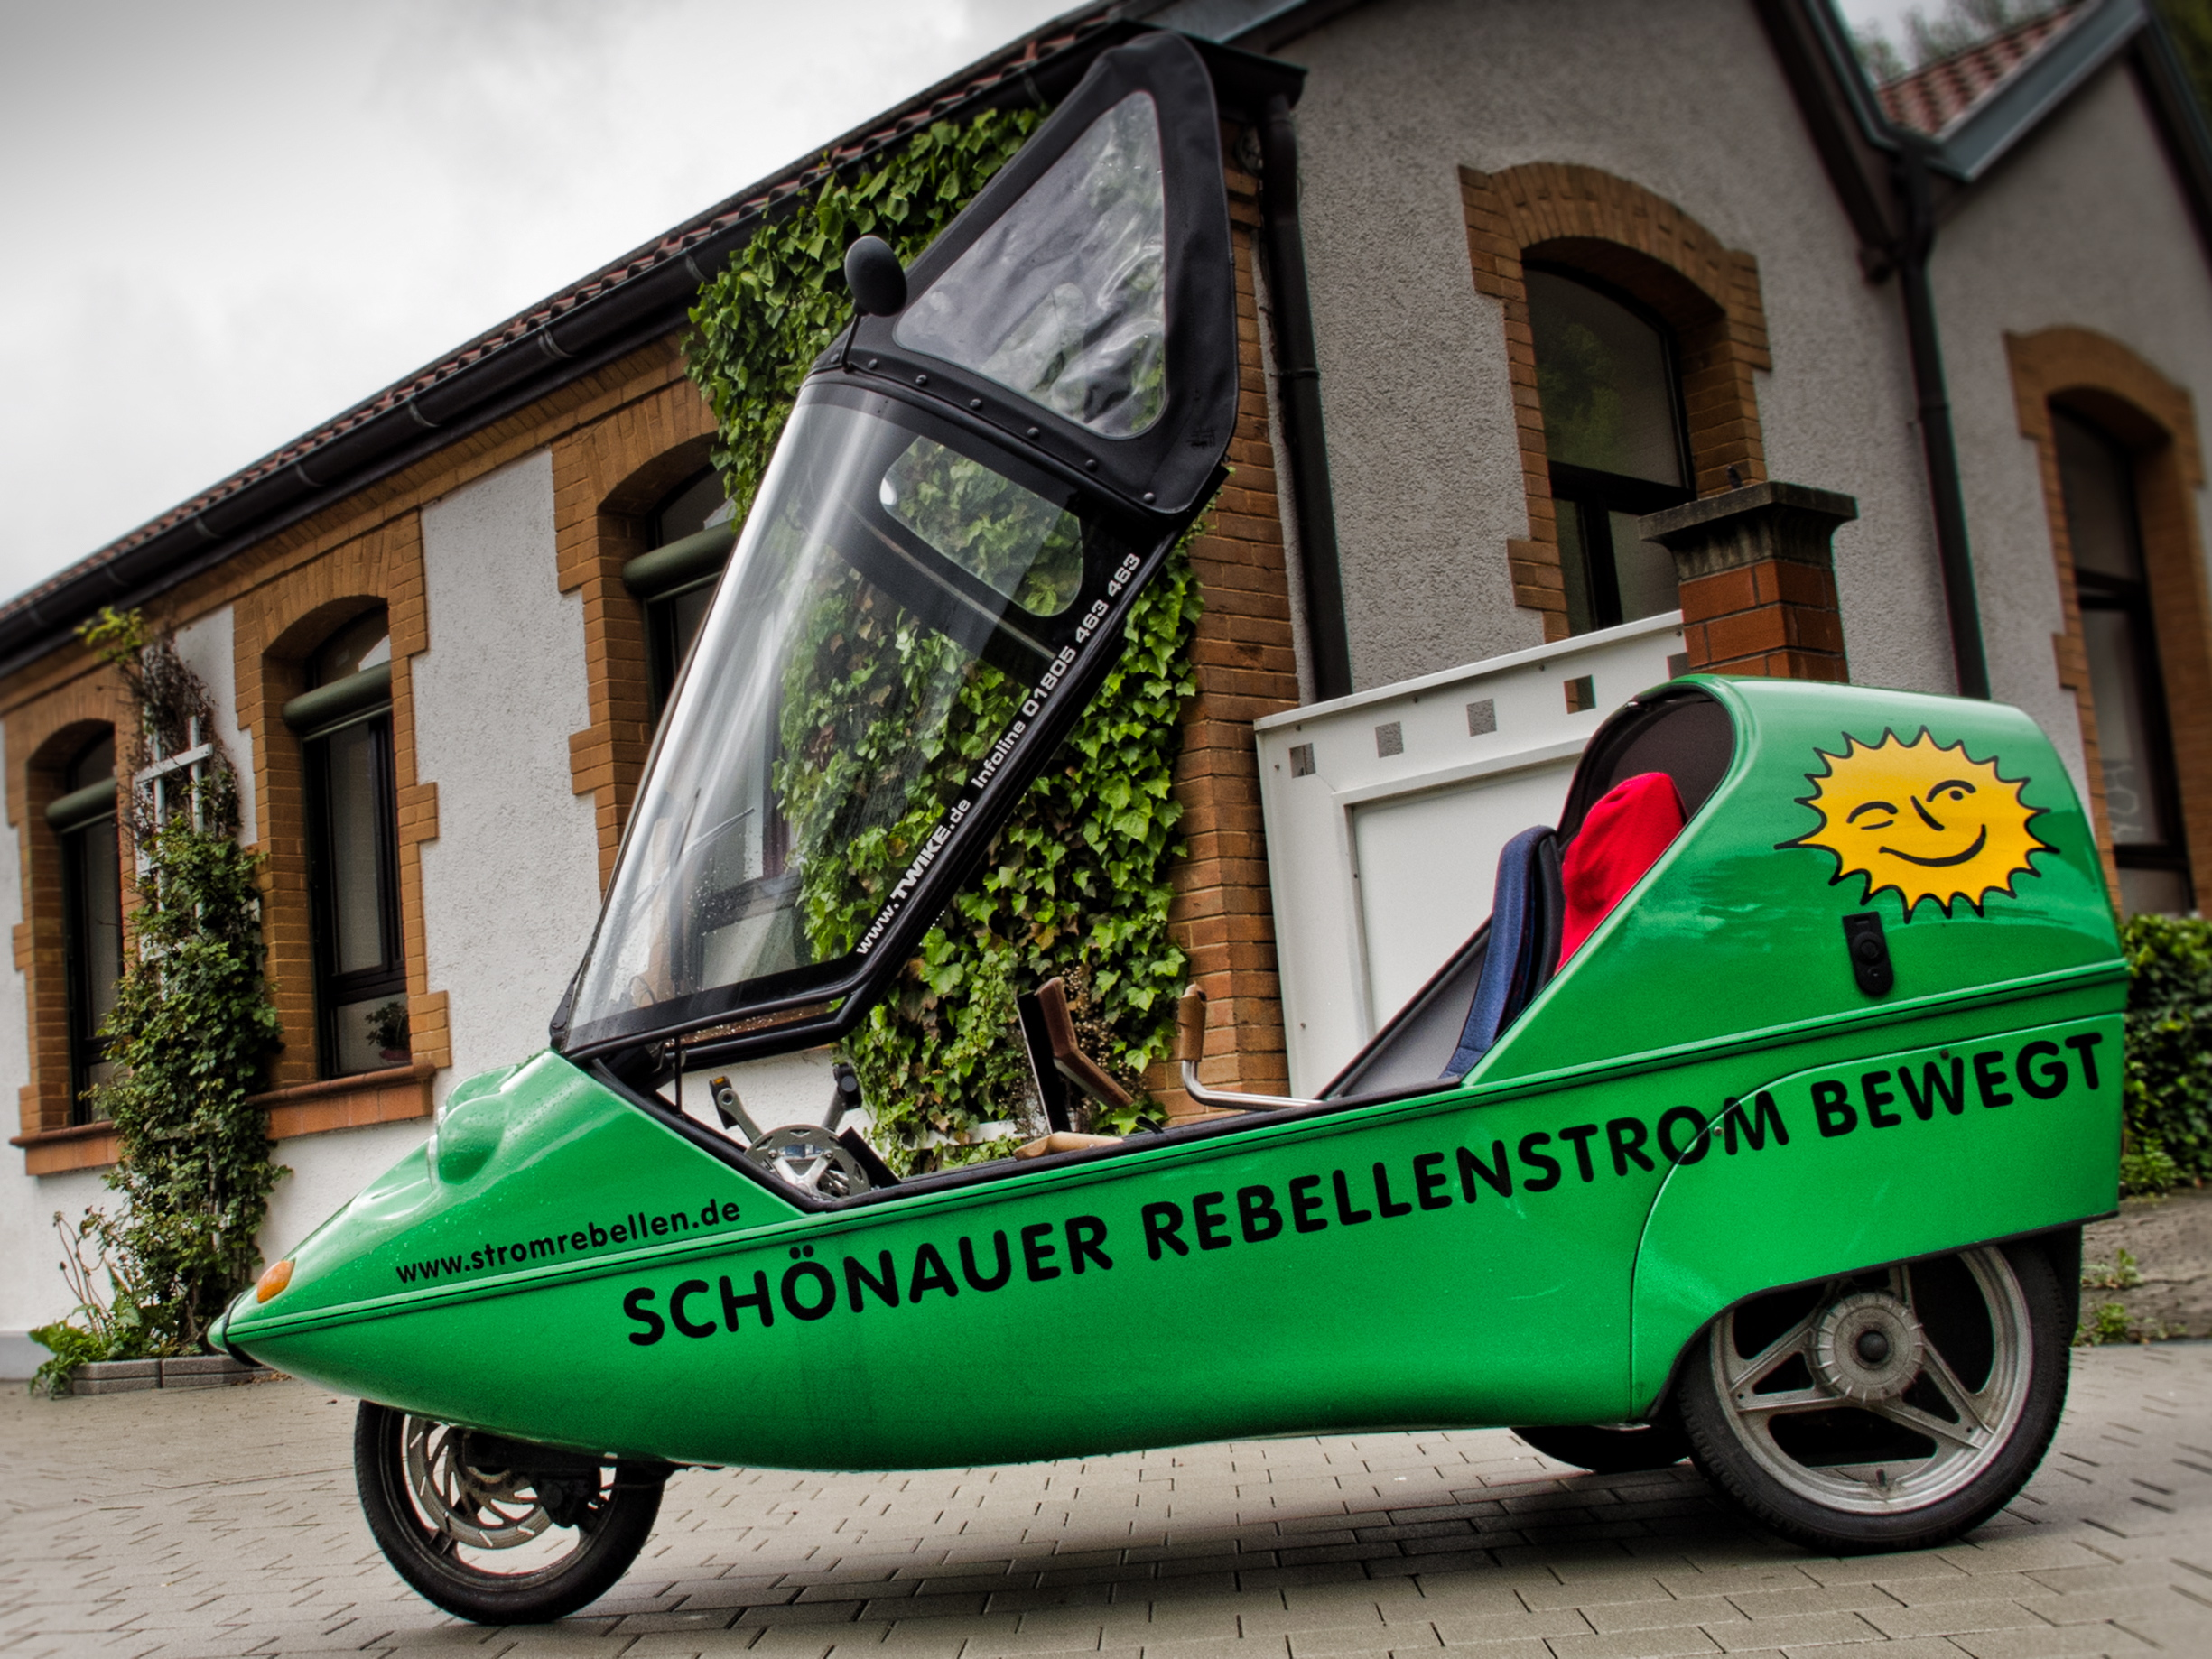 Electric car outside of EWS, Germany's first green power cooperative utility.